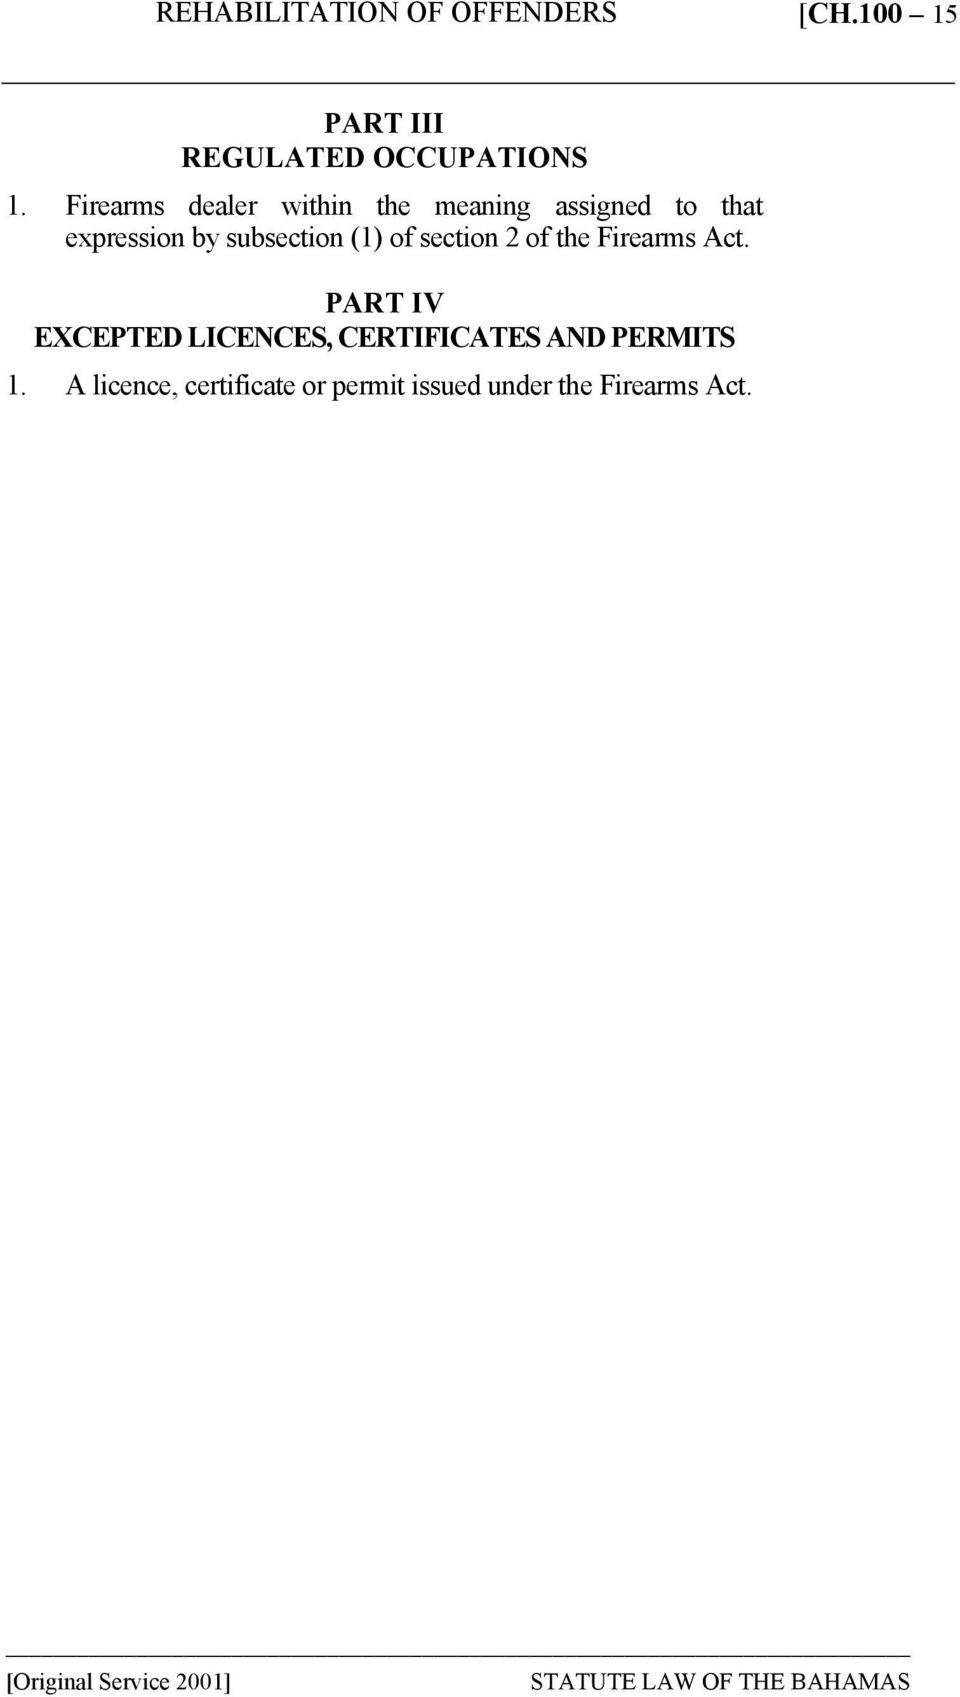 subsection (1) of section 2 of the Firearms Act.